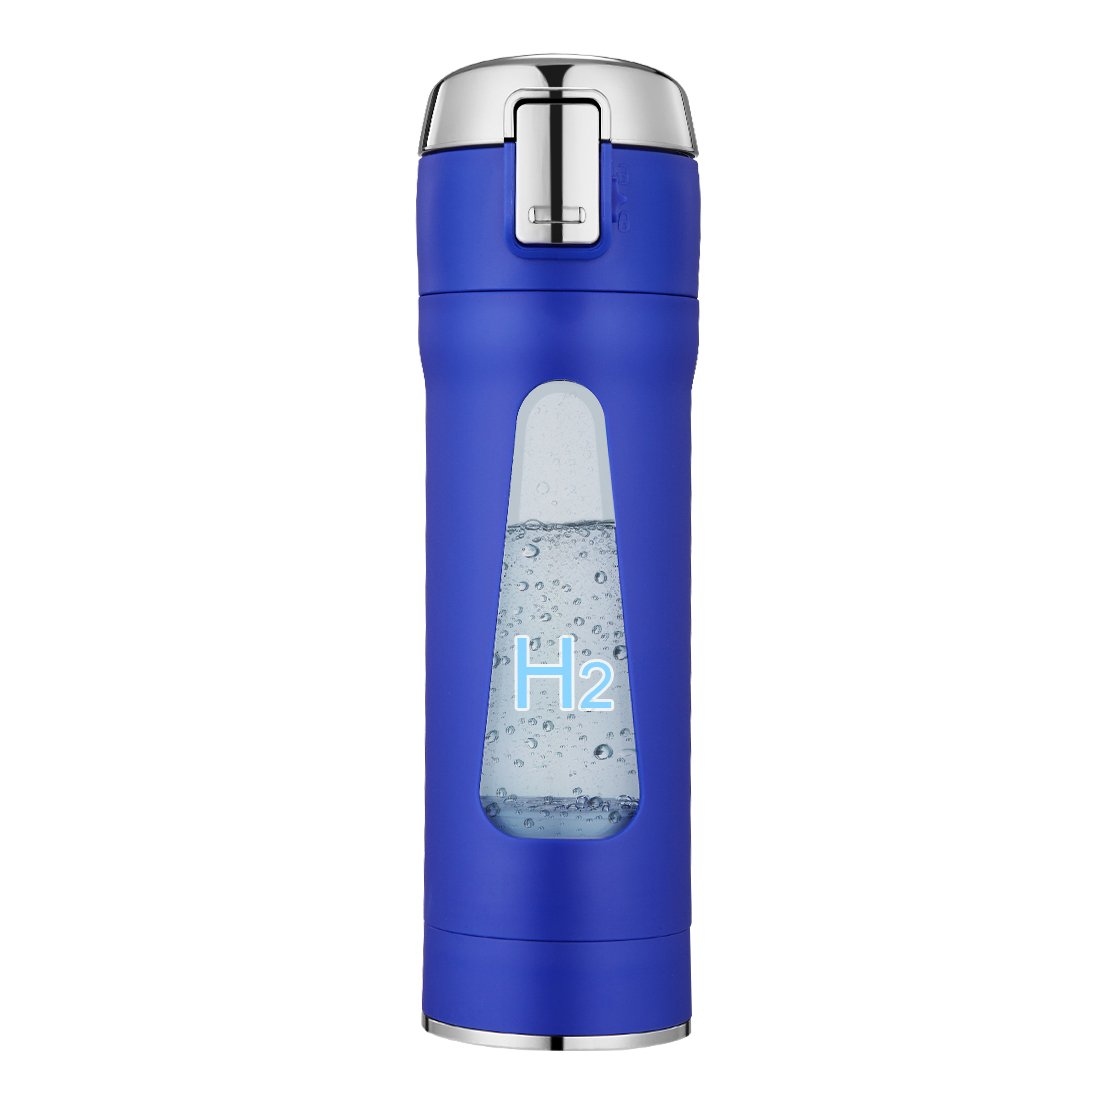 Alkaline Hydrogen Water Maker Machine with hydrogen-enriched tile Portable Sports Quantum Travel Water Bottle Make Hydrogen Content Up to 800-1200 PPB Insulated against hot (Blue-new)